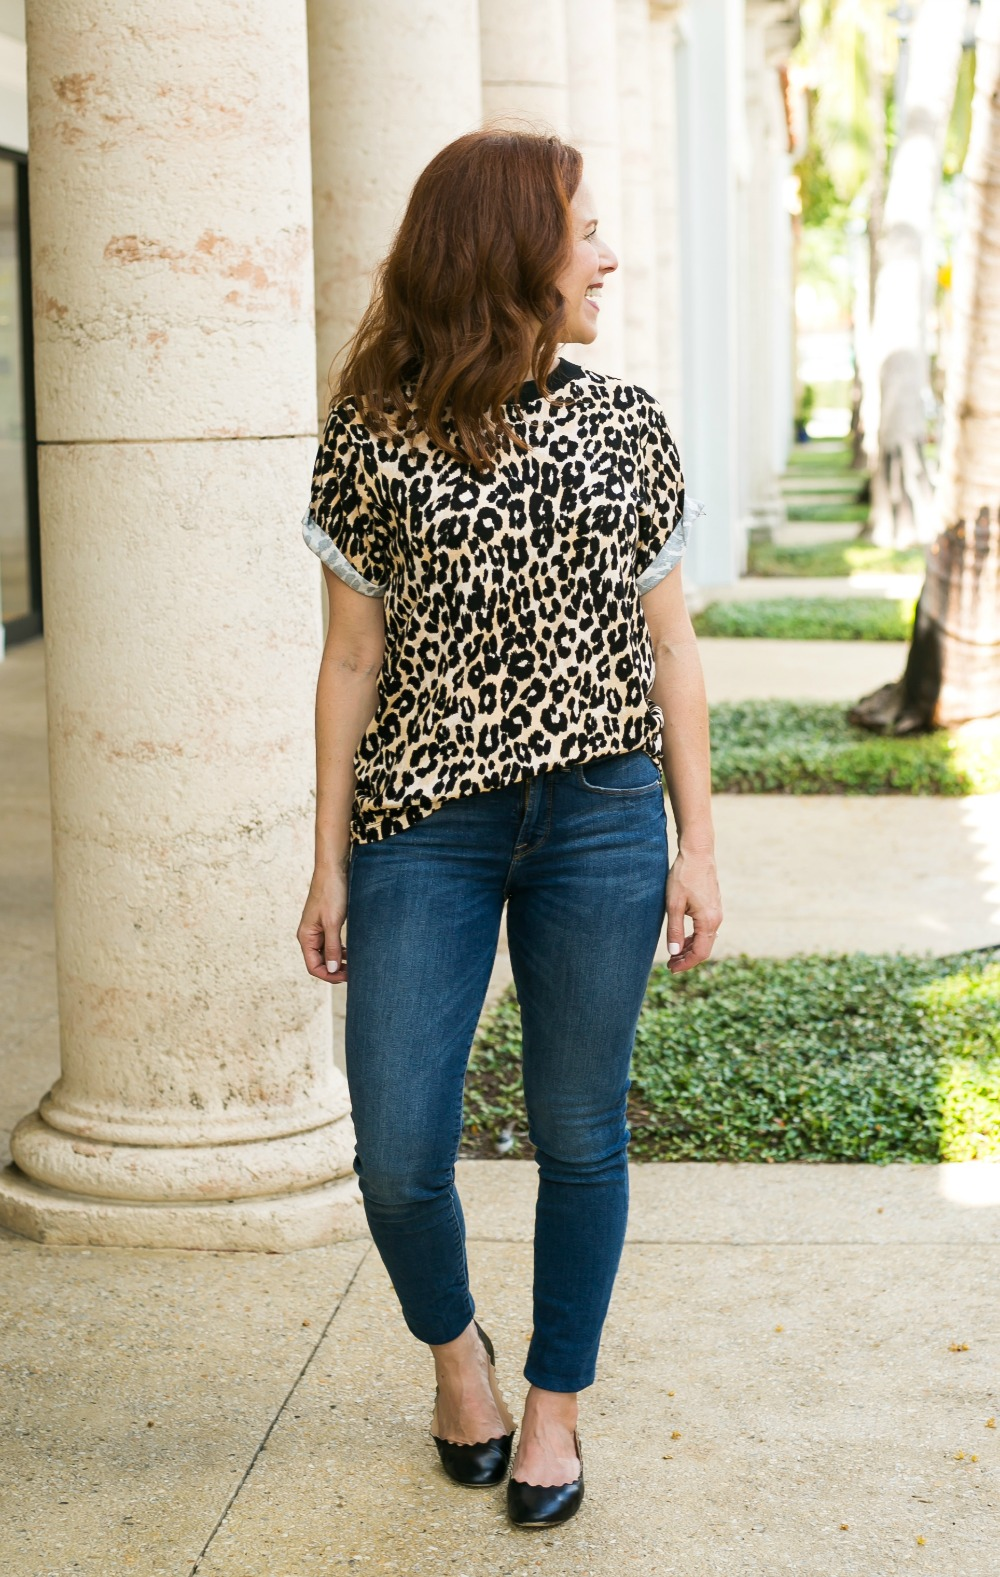 @themodernsavvy #fallstyle #leopard #momstyle   Good American   How real girls can style this fall's biggest trends including leopard   Fall Trends in Warm Weather: Leopard featured by popular Florida life and style blogger The Modern Savvy